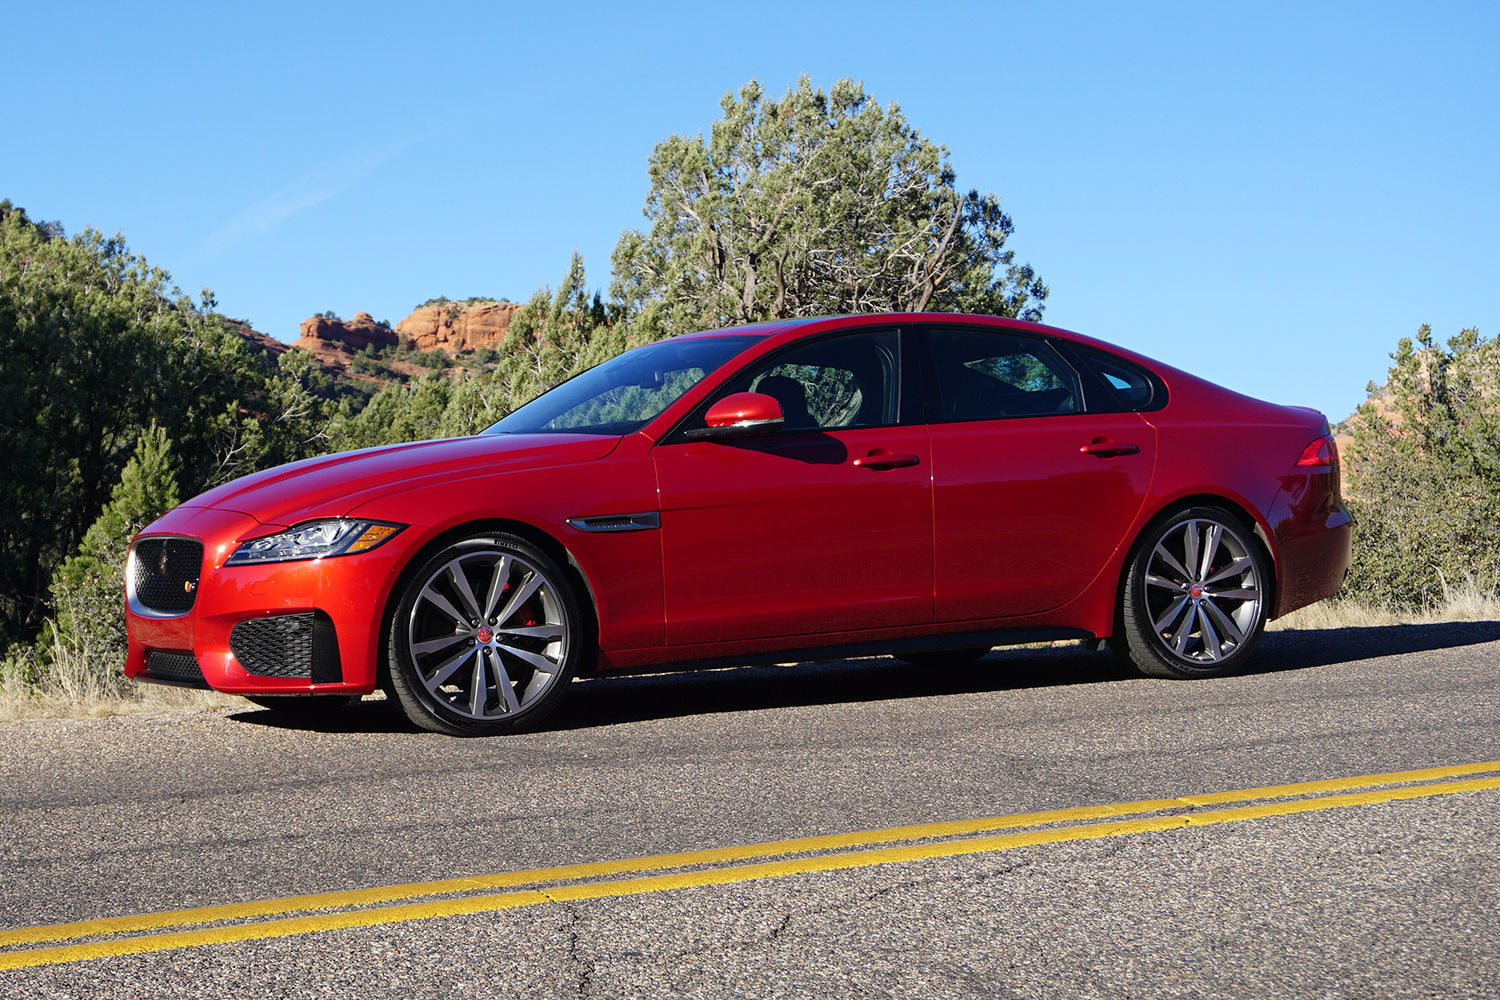 2016 jaguar xf first drive impressions digital trends. Black Bedroom Furniture Sets. Home Design Ideas